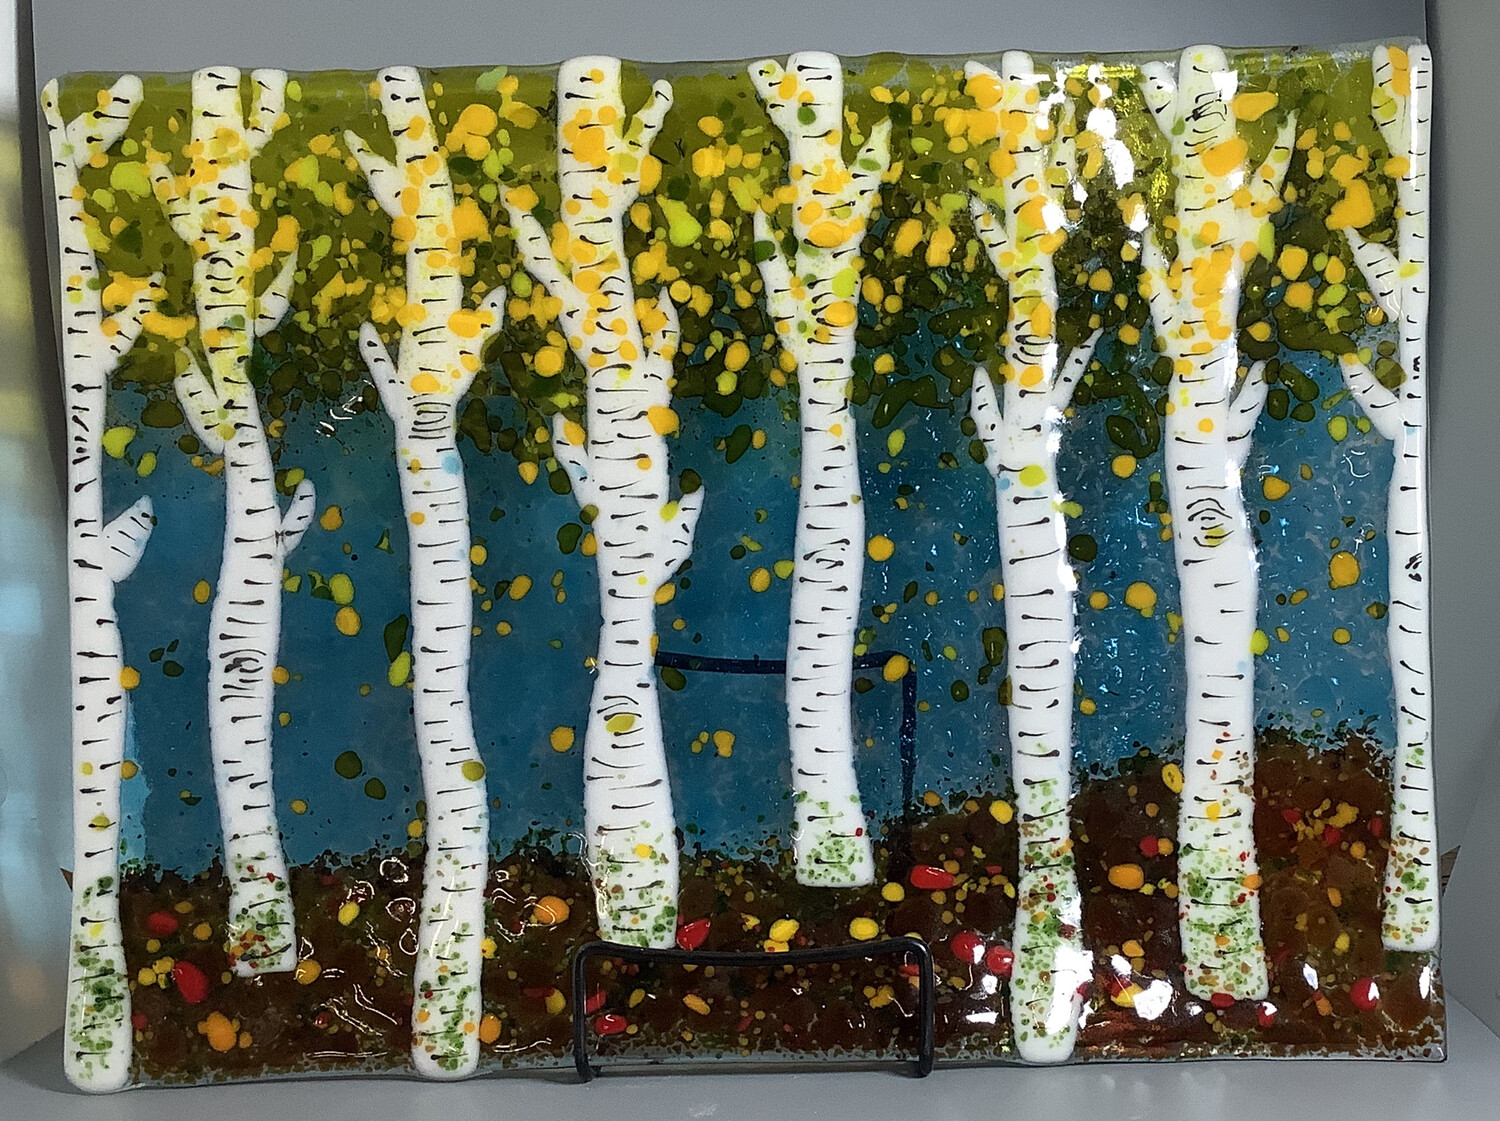 Glass Fusing Class: Birch Trees  Wed. Oct 21st at 11am-2pm